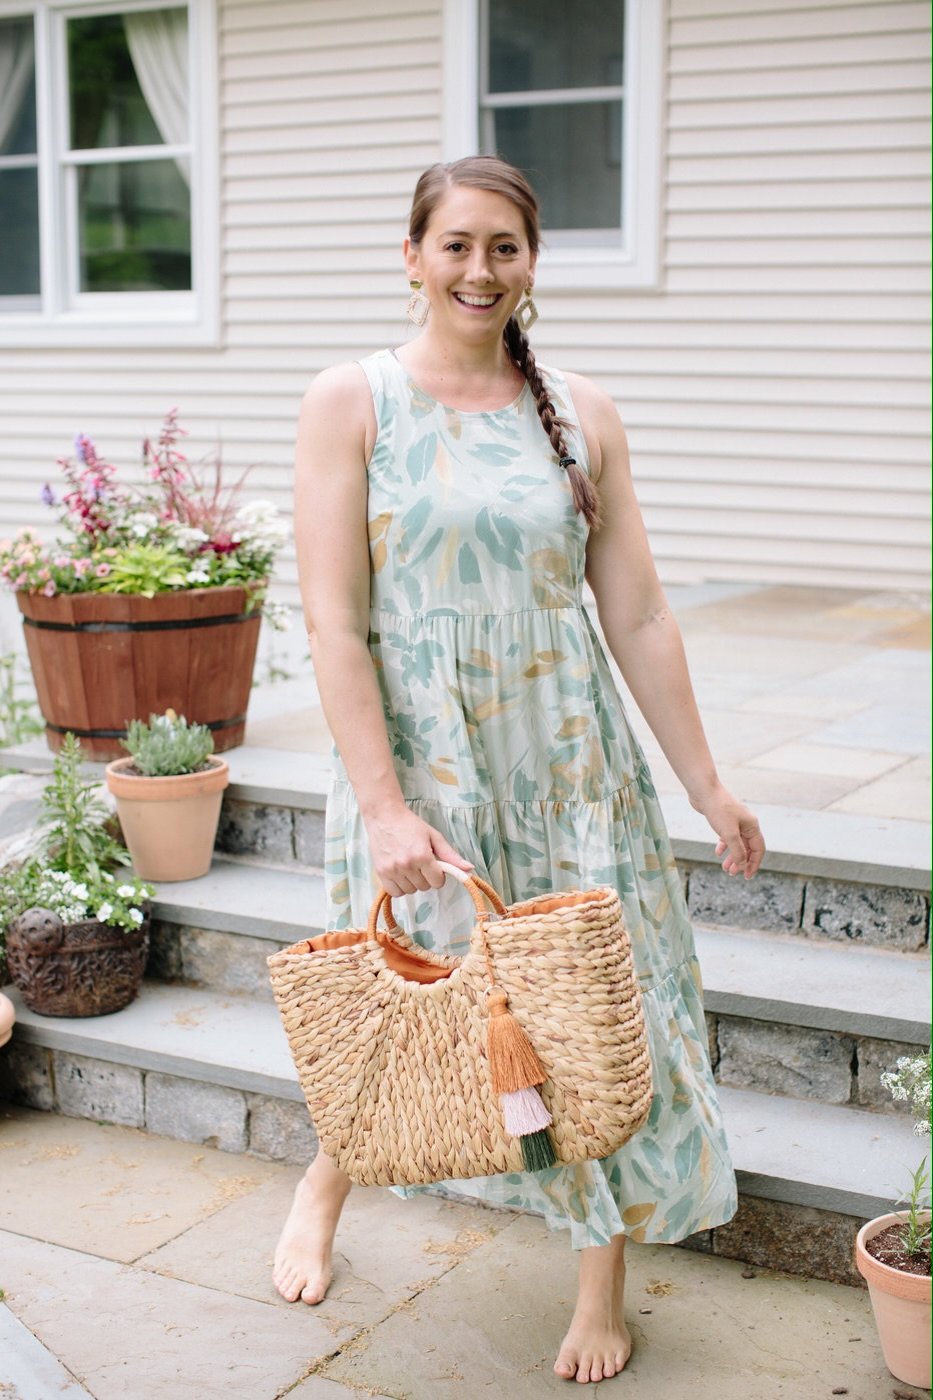 Christine Covino, lifestyle blogger wearing a flowered summer dress